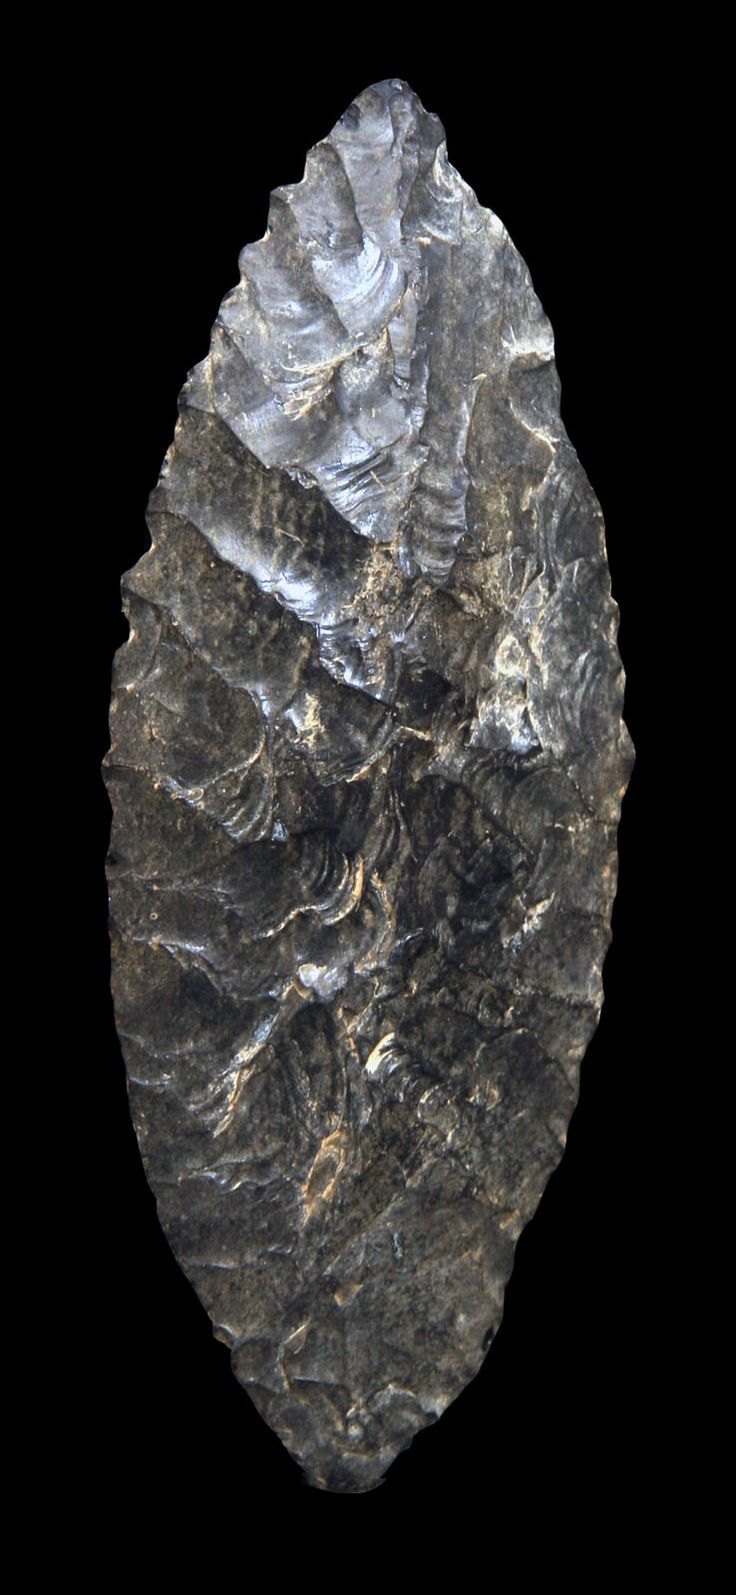 """Flint Blade. During the Stone Age, flint tools were made by """"knapping."""" A process where one hard object is used to strike another hard object such as flint stone to create a shape or form. Flint was a natural choice as it splits when struck forming sharp splinters called flakes or blades. Location: Guerrero State, Mexico 